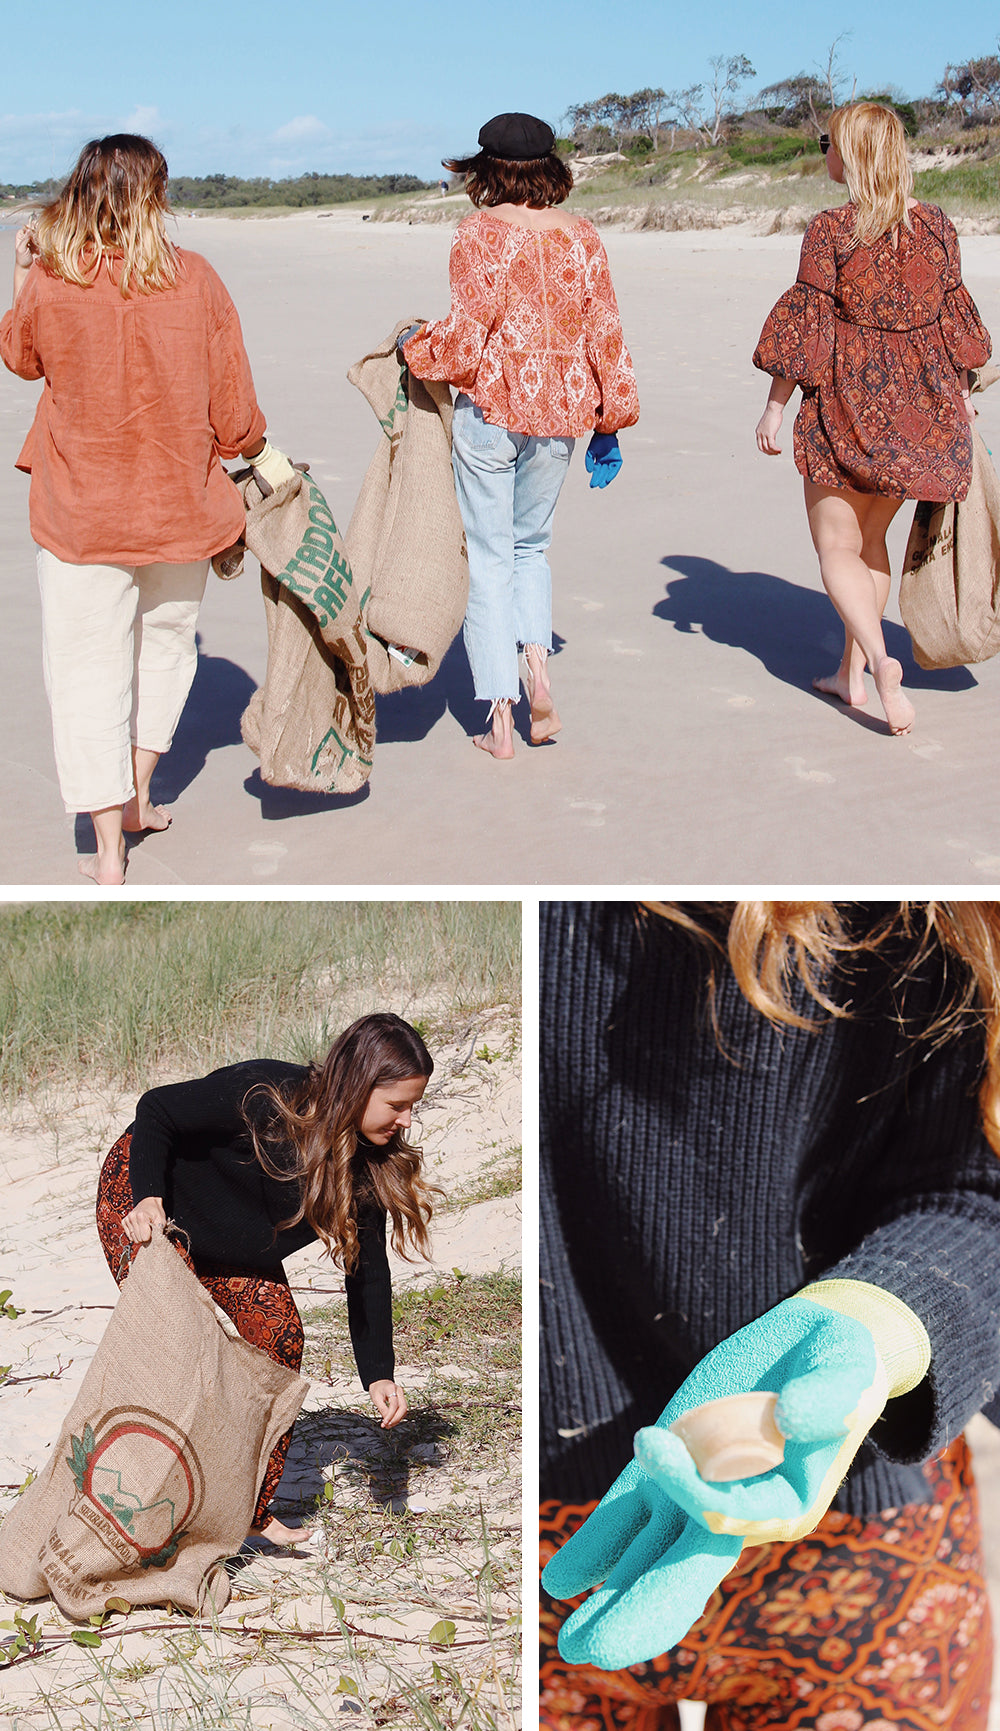 Cleaning up our beaches and oceans the Arnhem team tackle one piece of plastic waste at a time